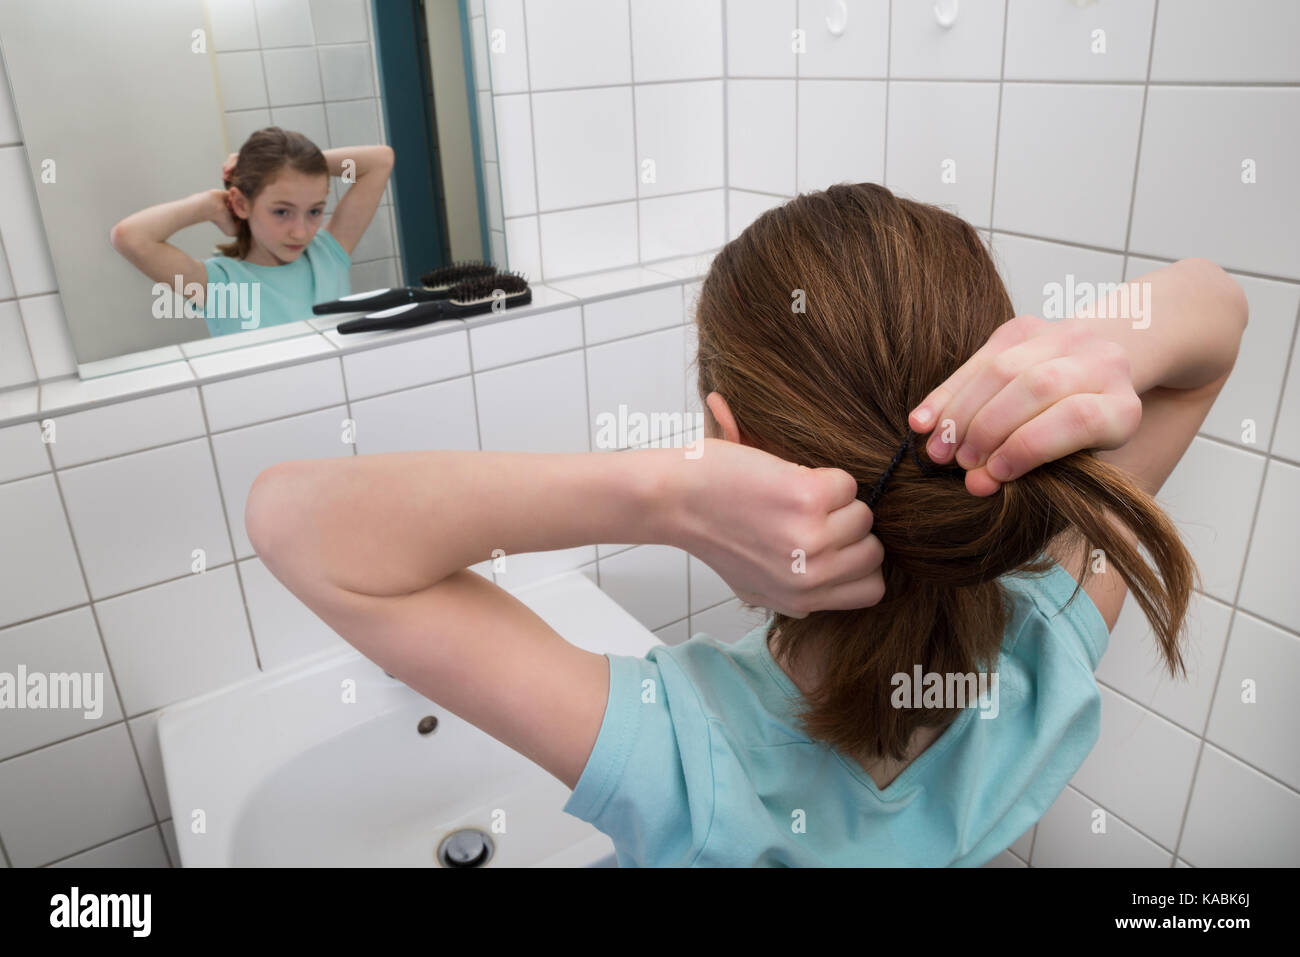 Little Girl Tying Hair In Front Of Mirror In Bathroom - Stock Image